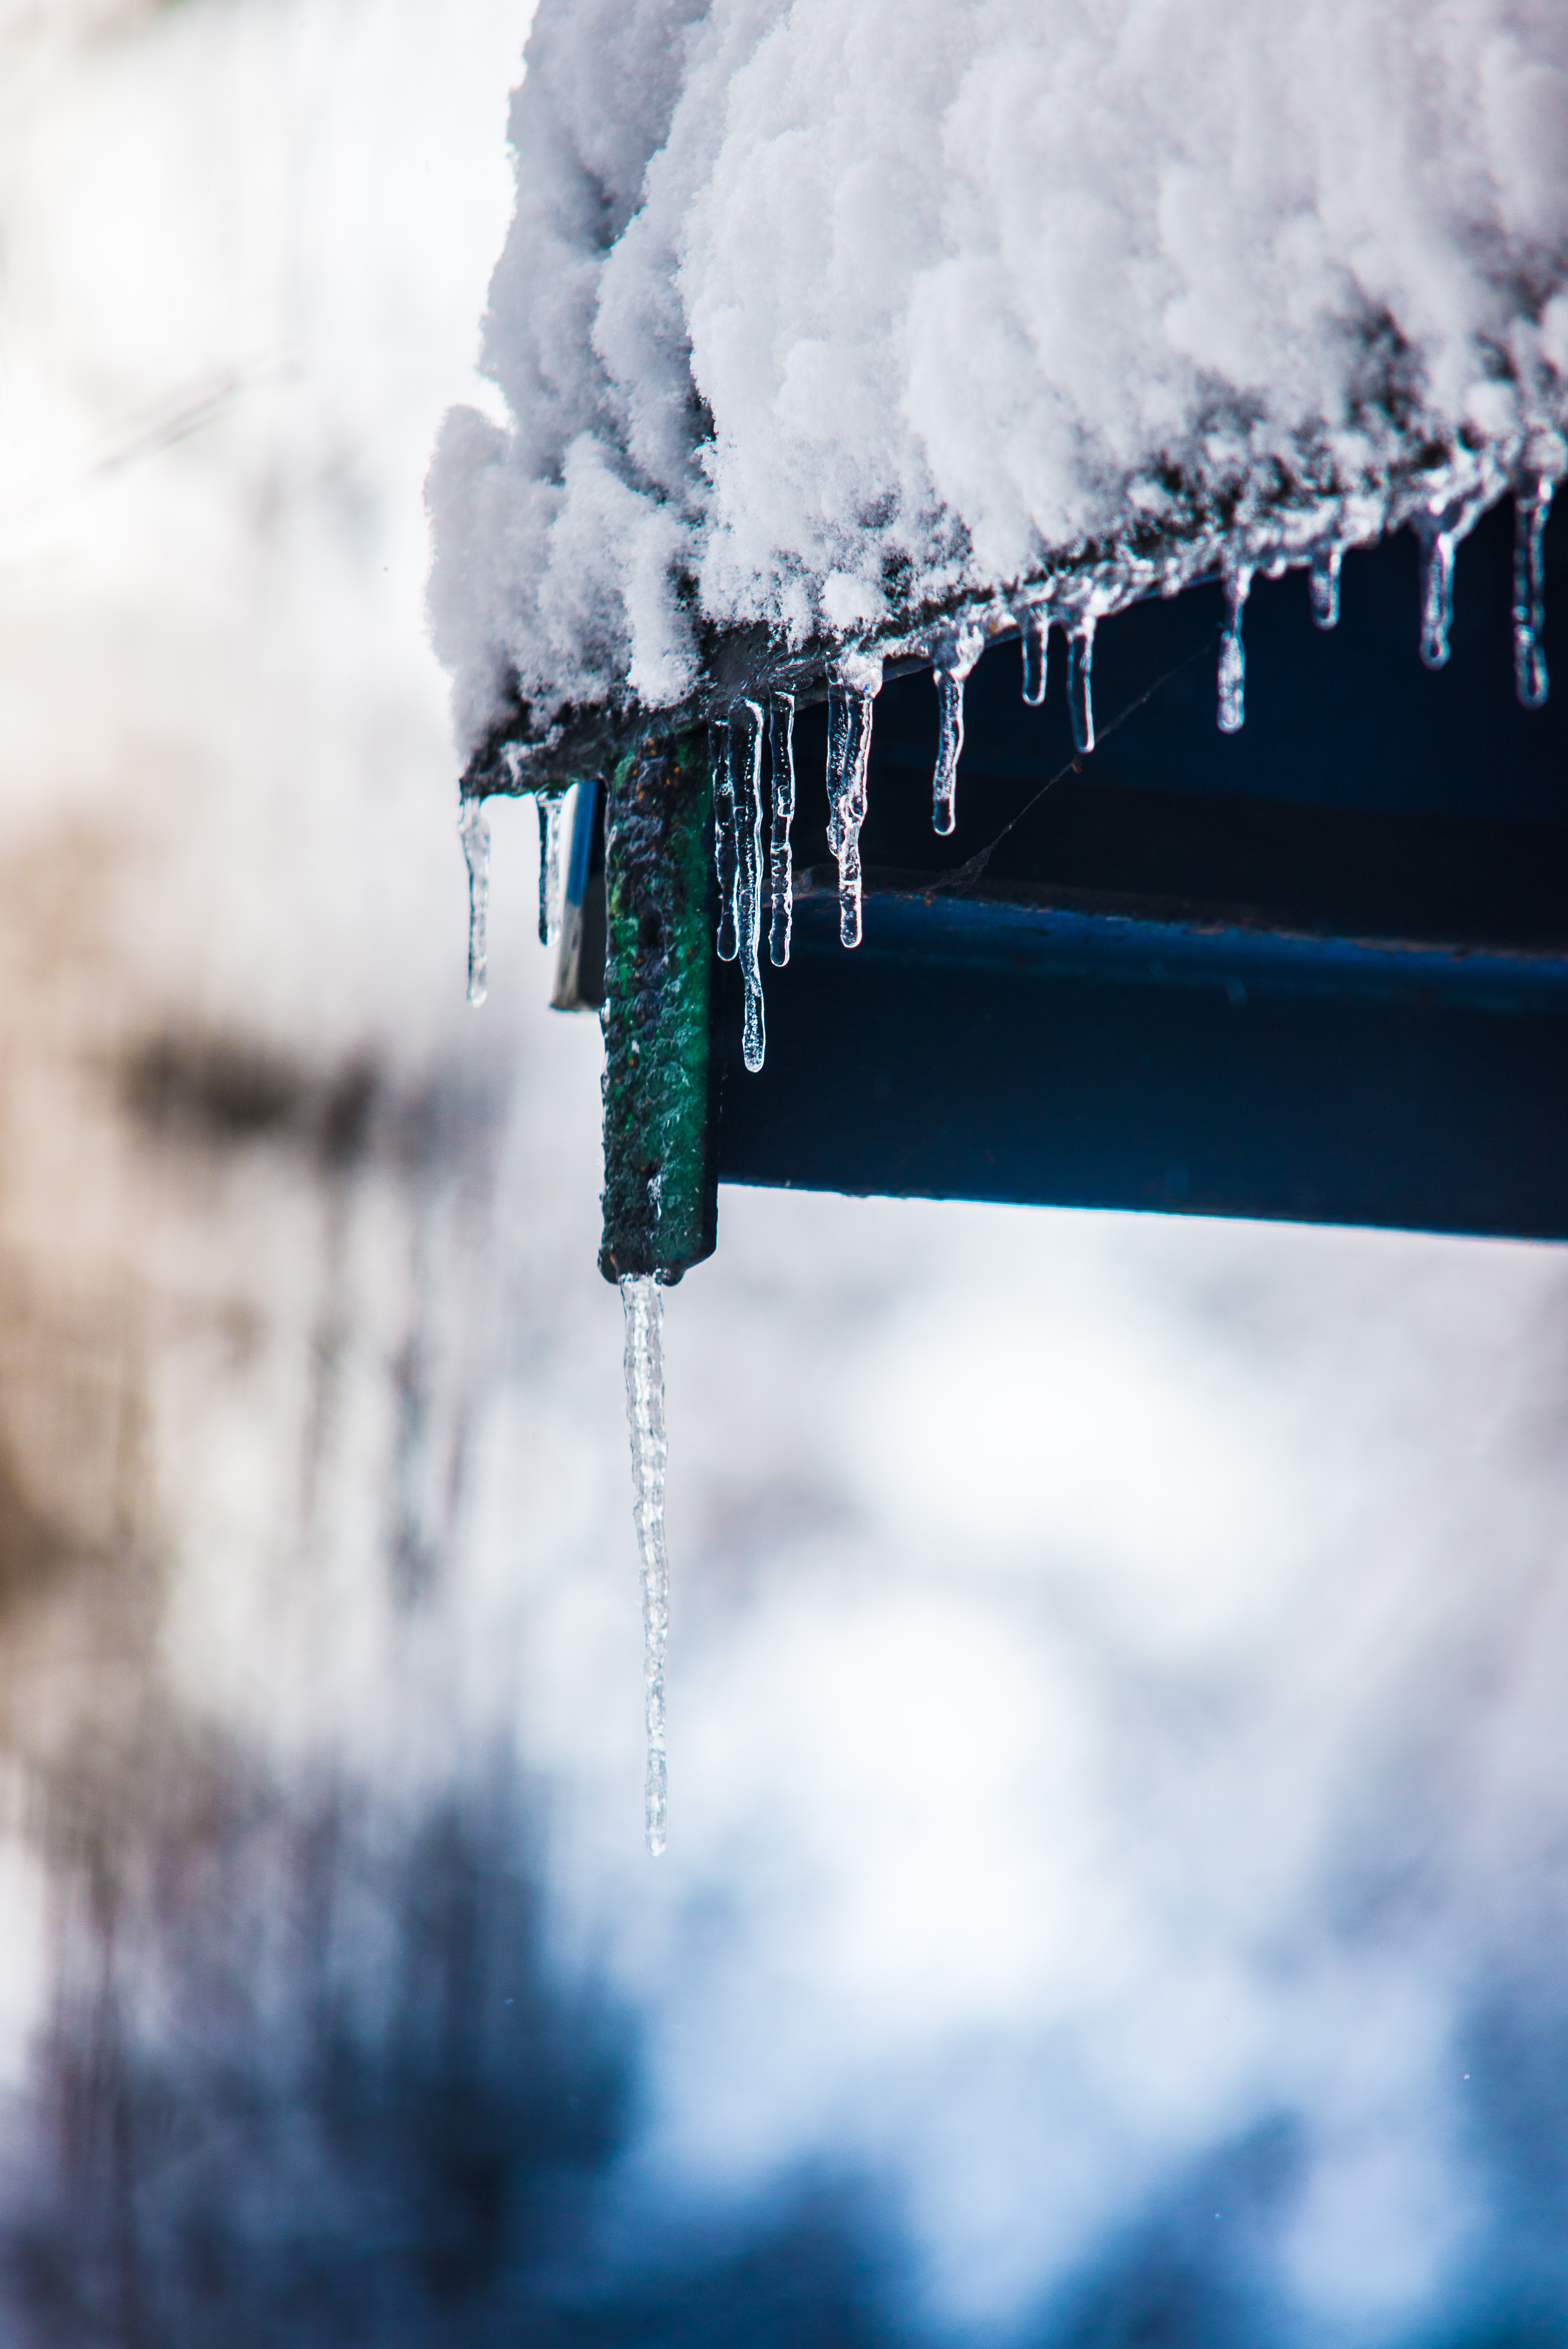 Snow & Your Gutters